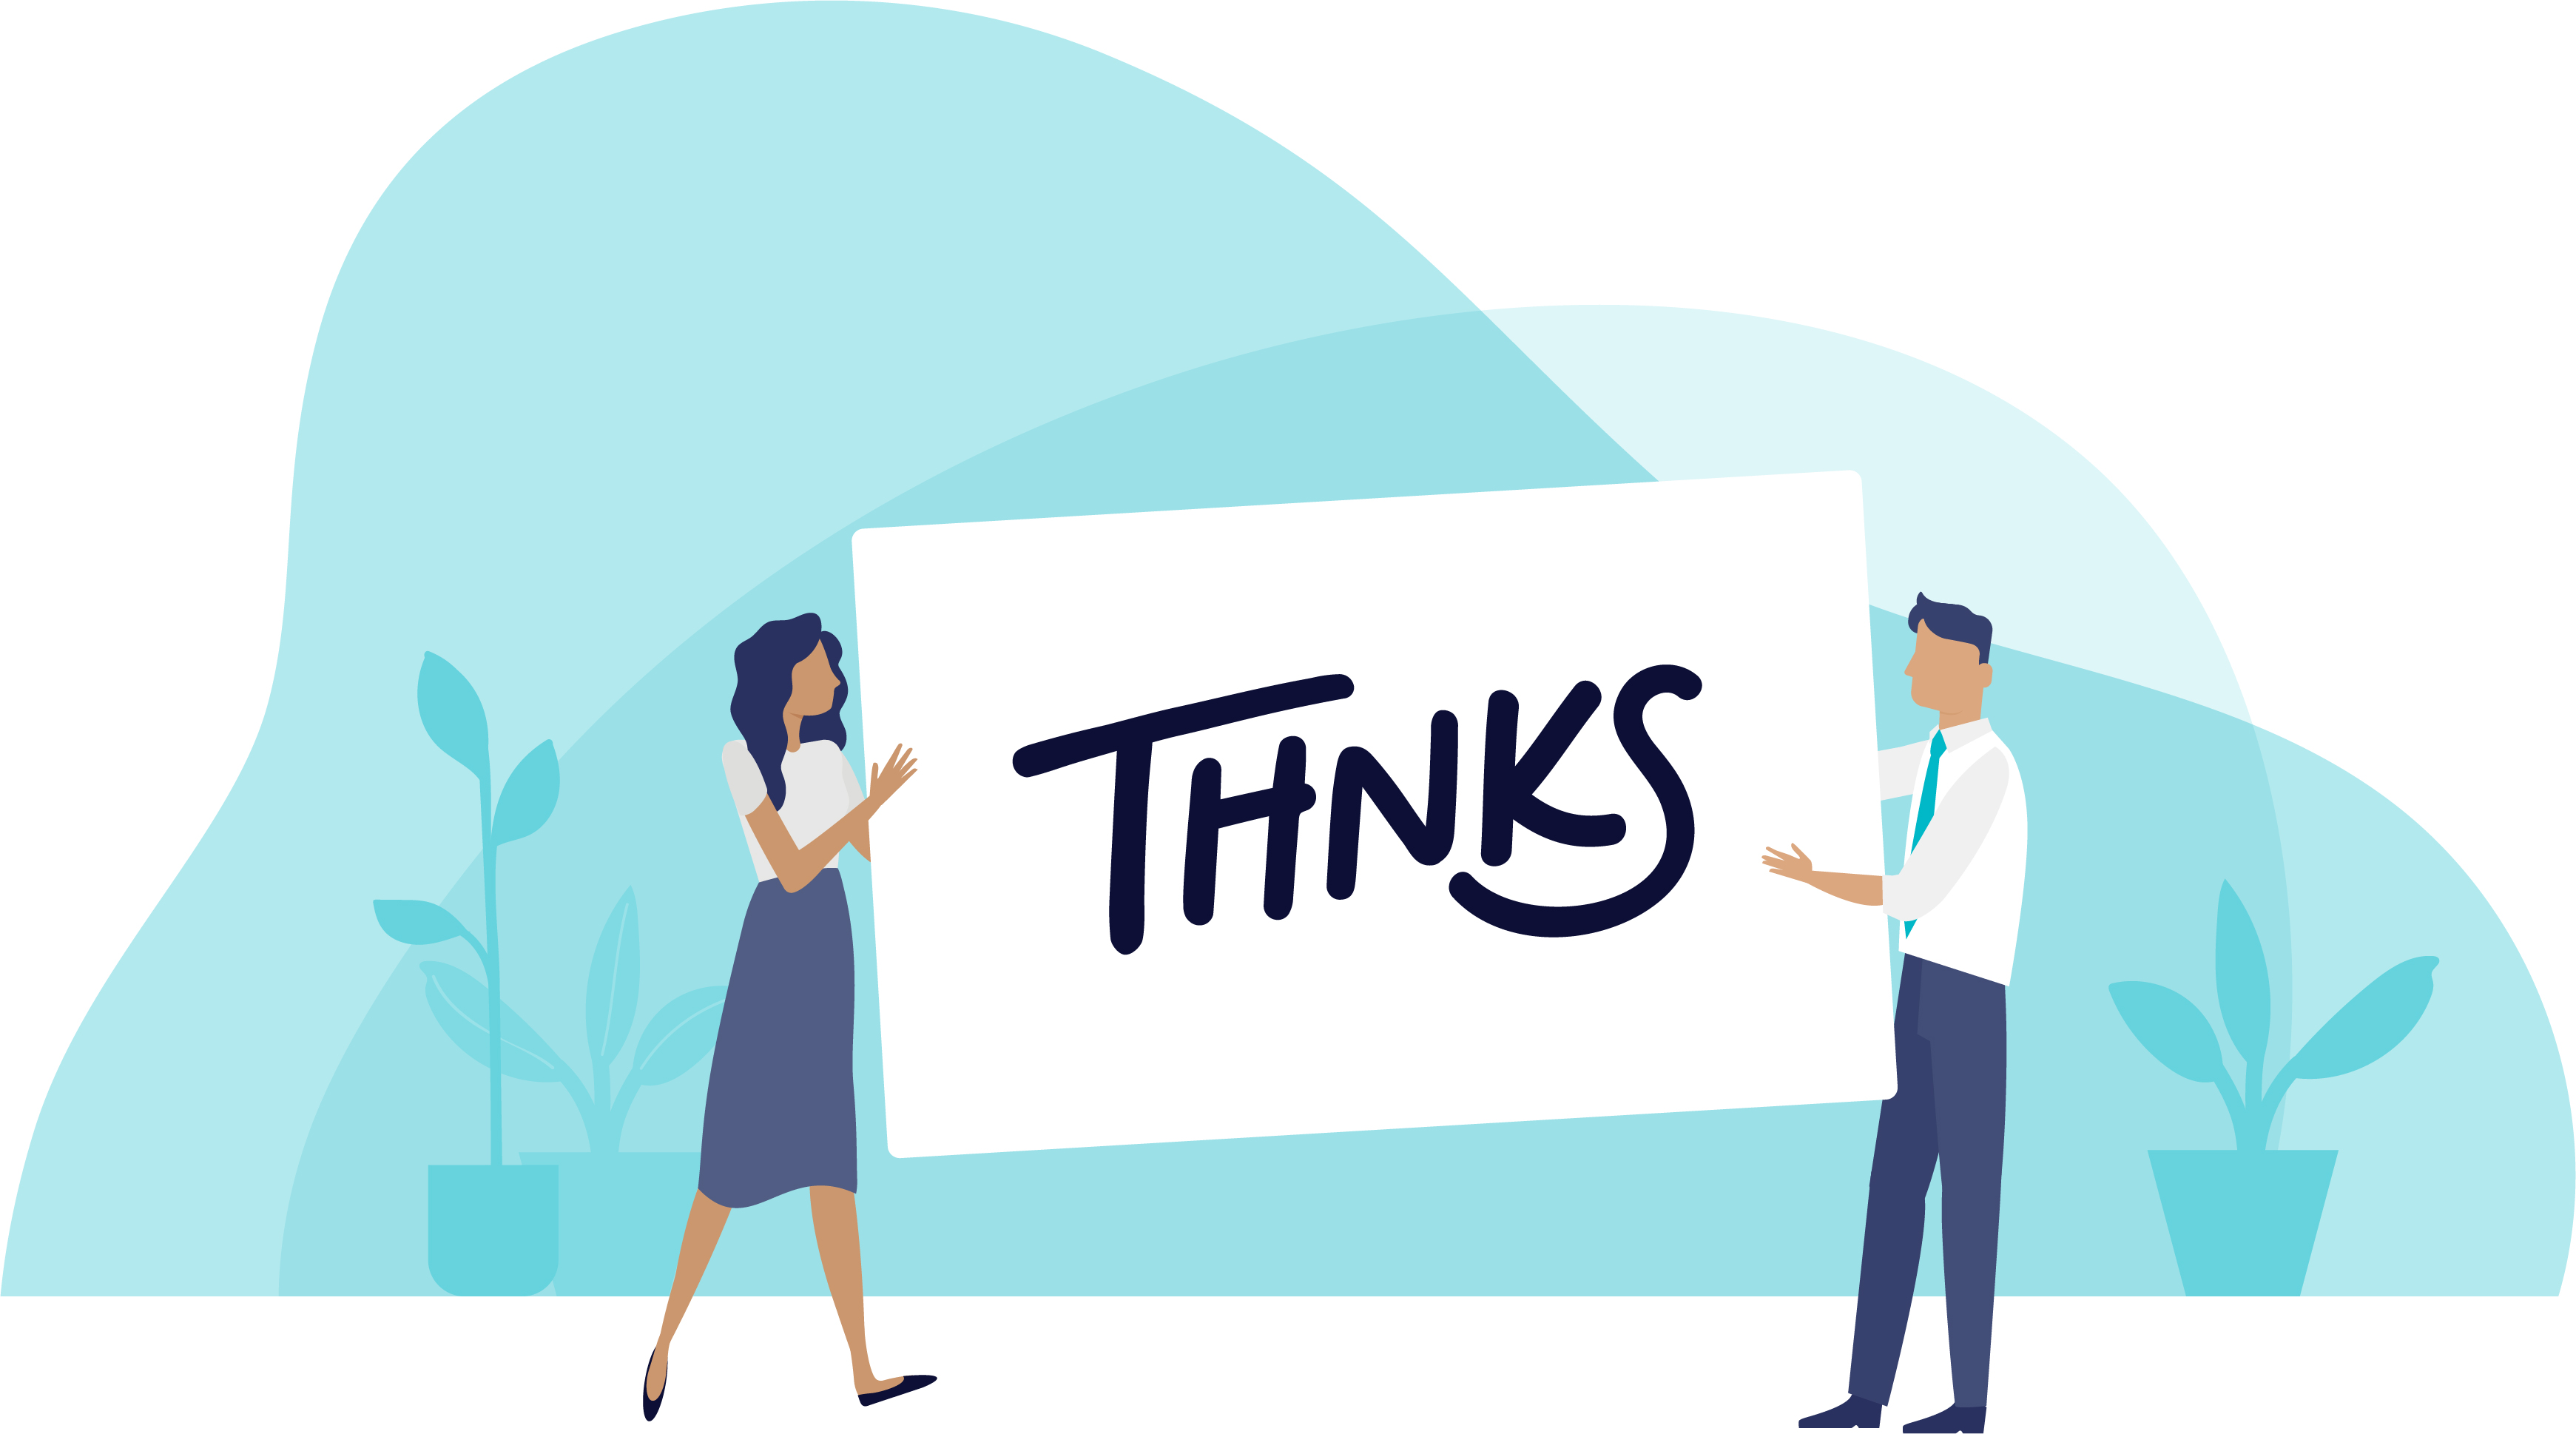 Overview | All About Thnks